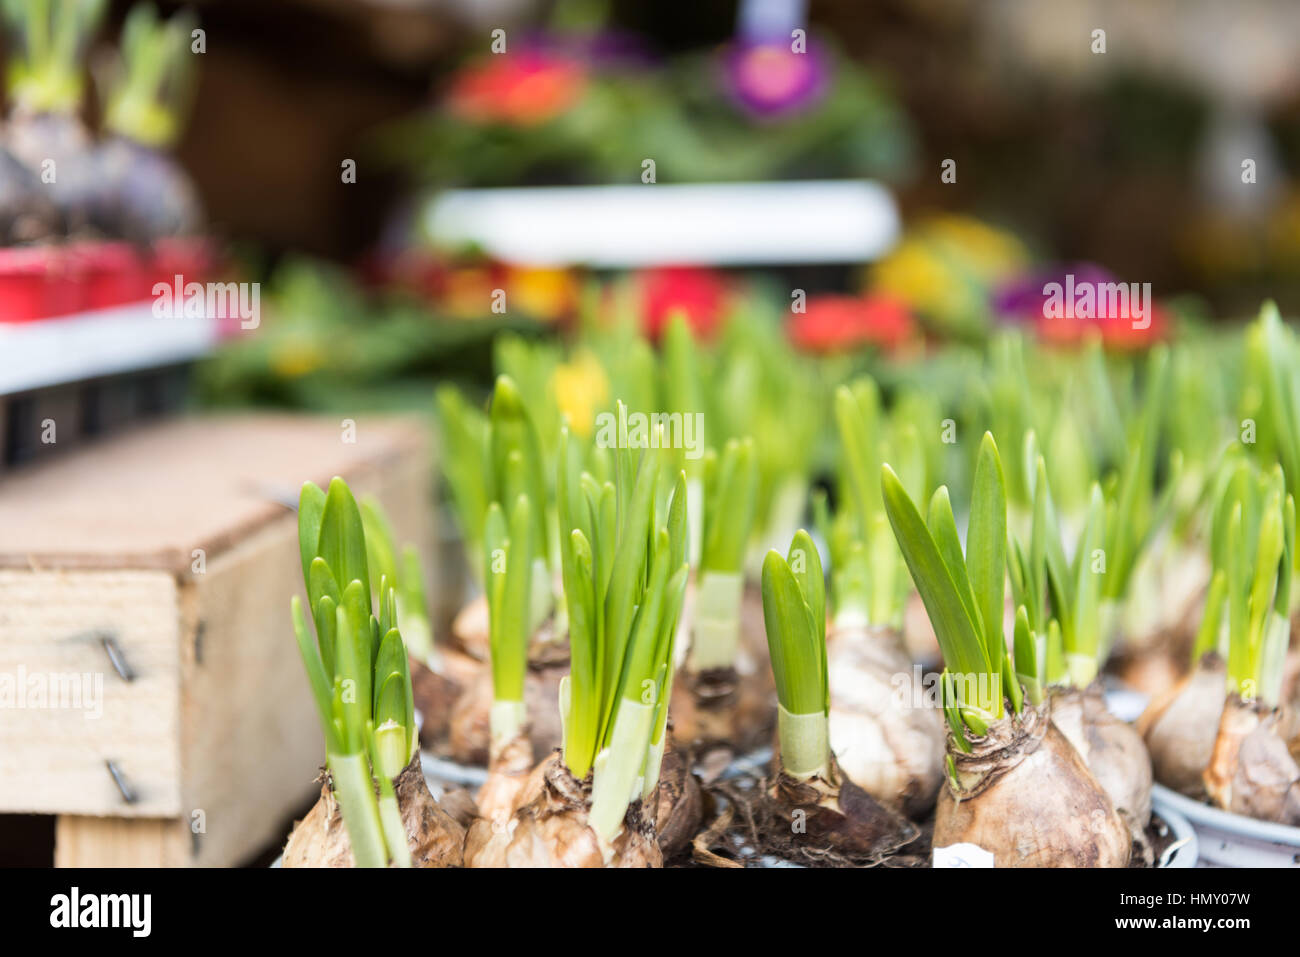 ESSEN, GERMANY - JANUARY 25, 2017: a flower store offers various kinds of flower-bulbs that are nicely arranged Stock Photo